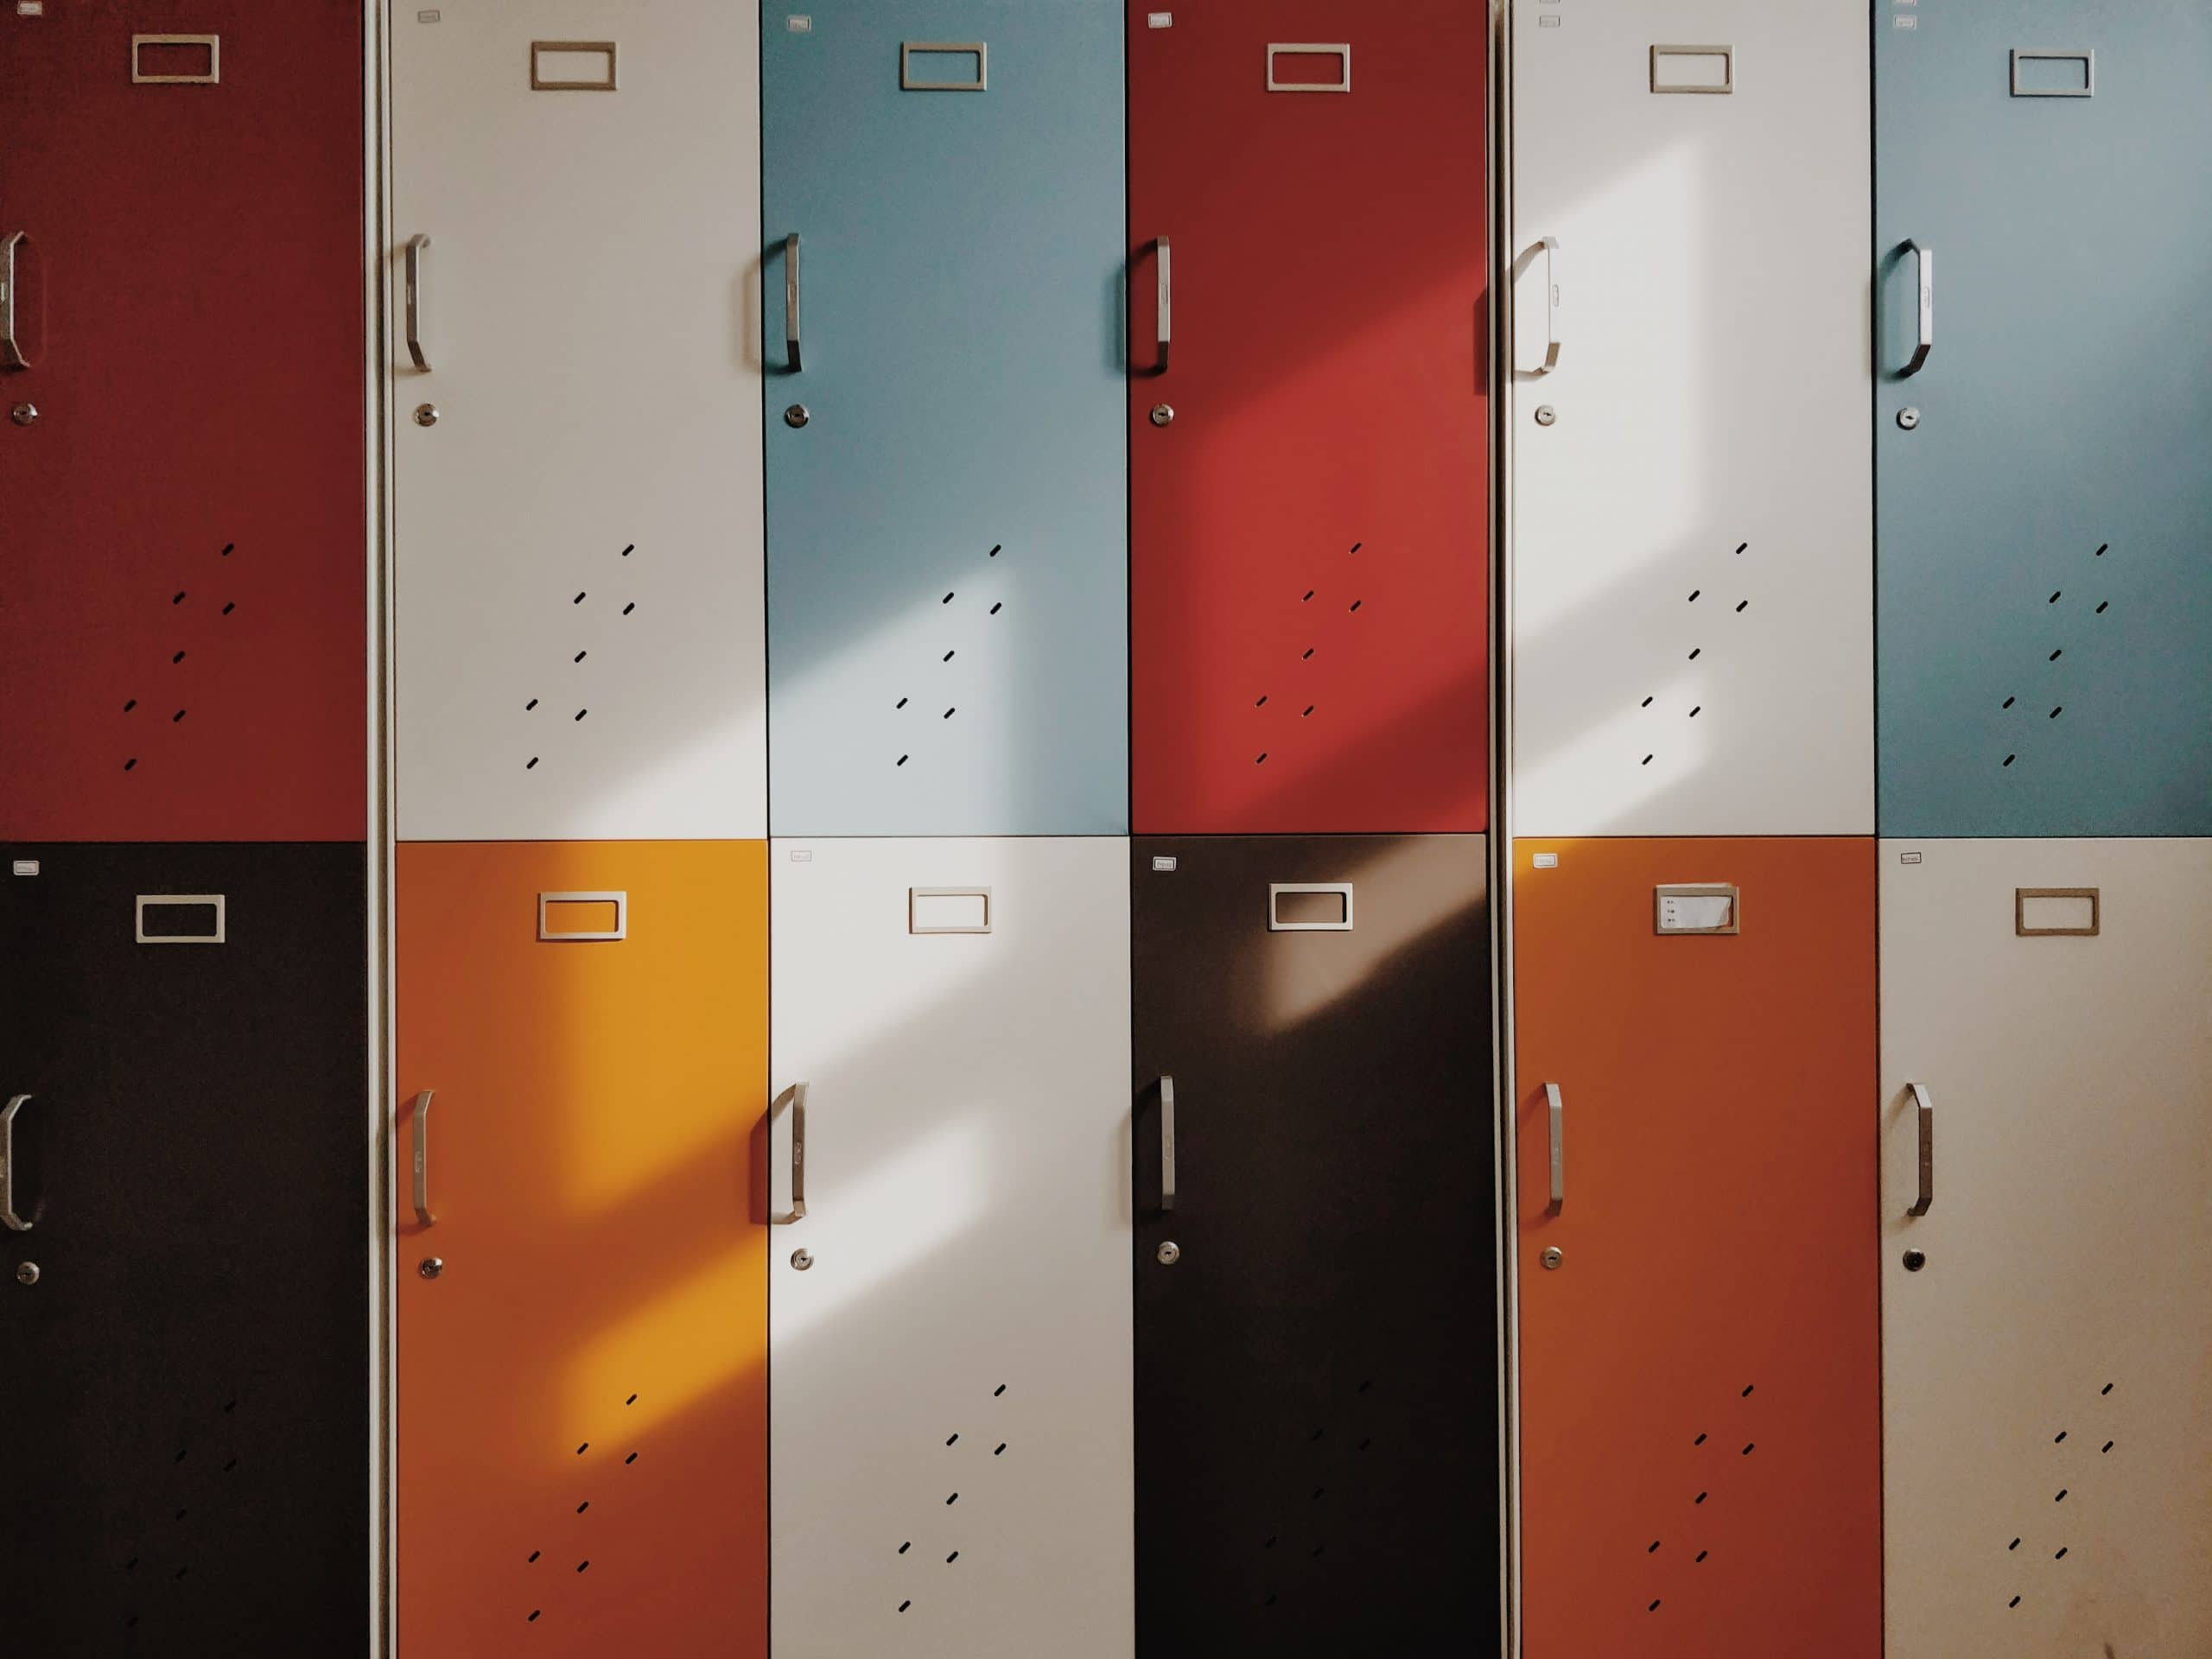 Tips for Minimalist Photography of Colorful lockers